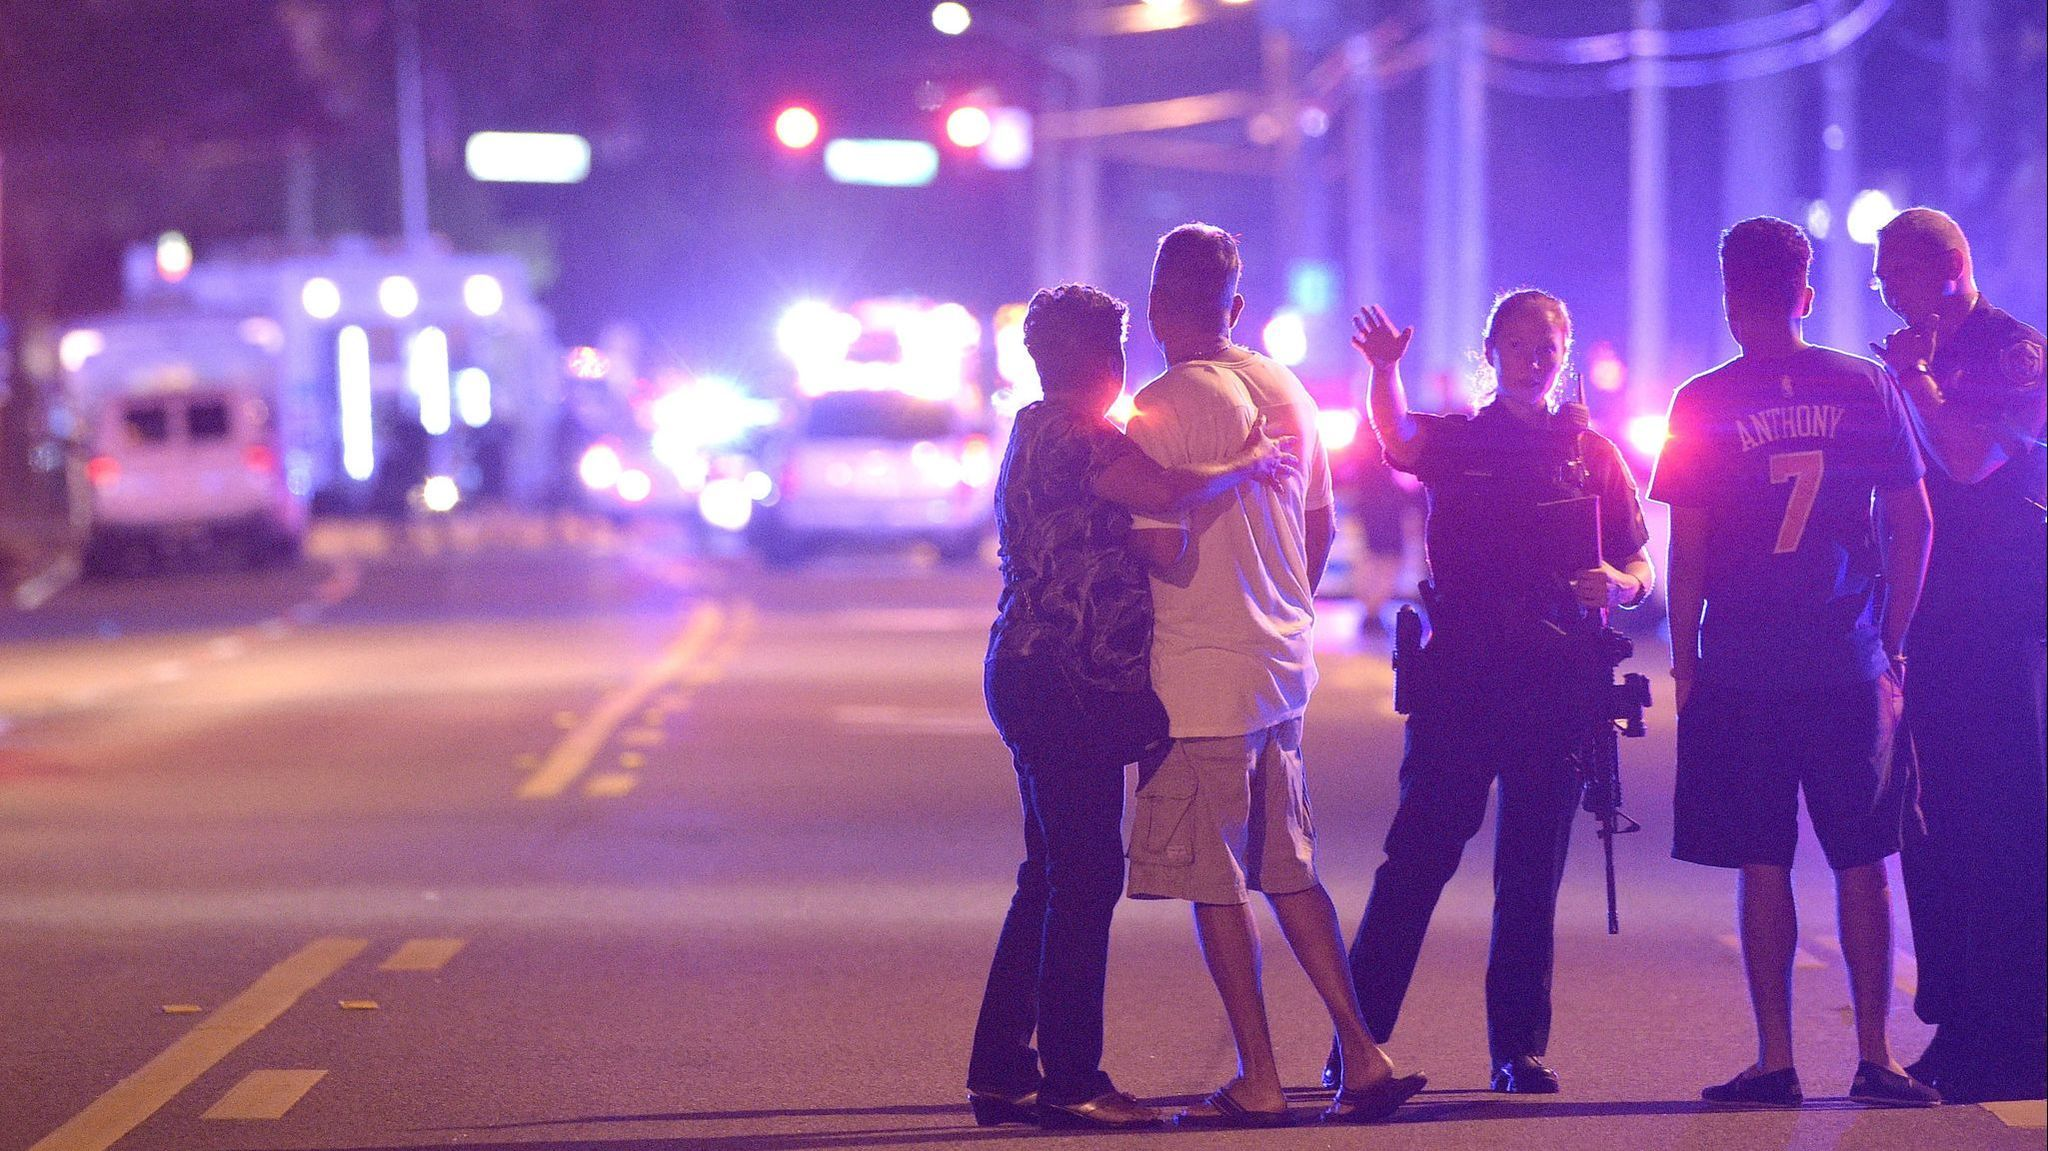 Orlando Police officers direct family members away from a multiple shooting at a nightclub in Orland